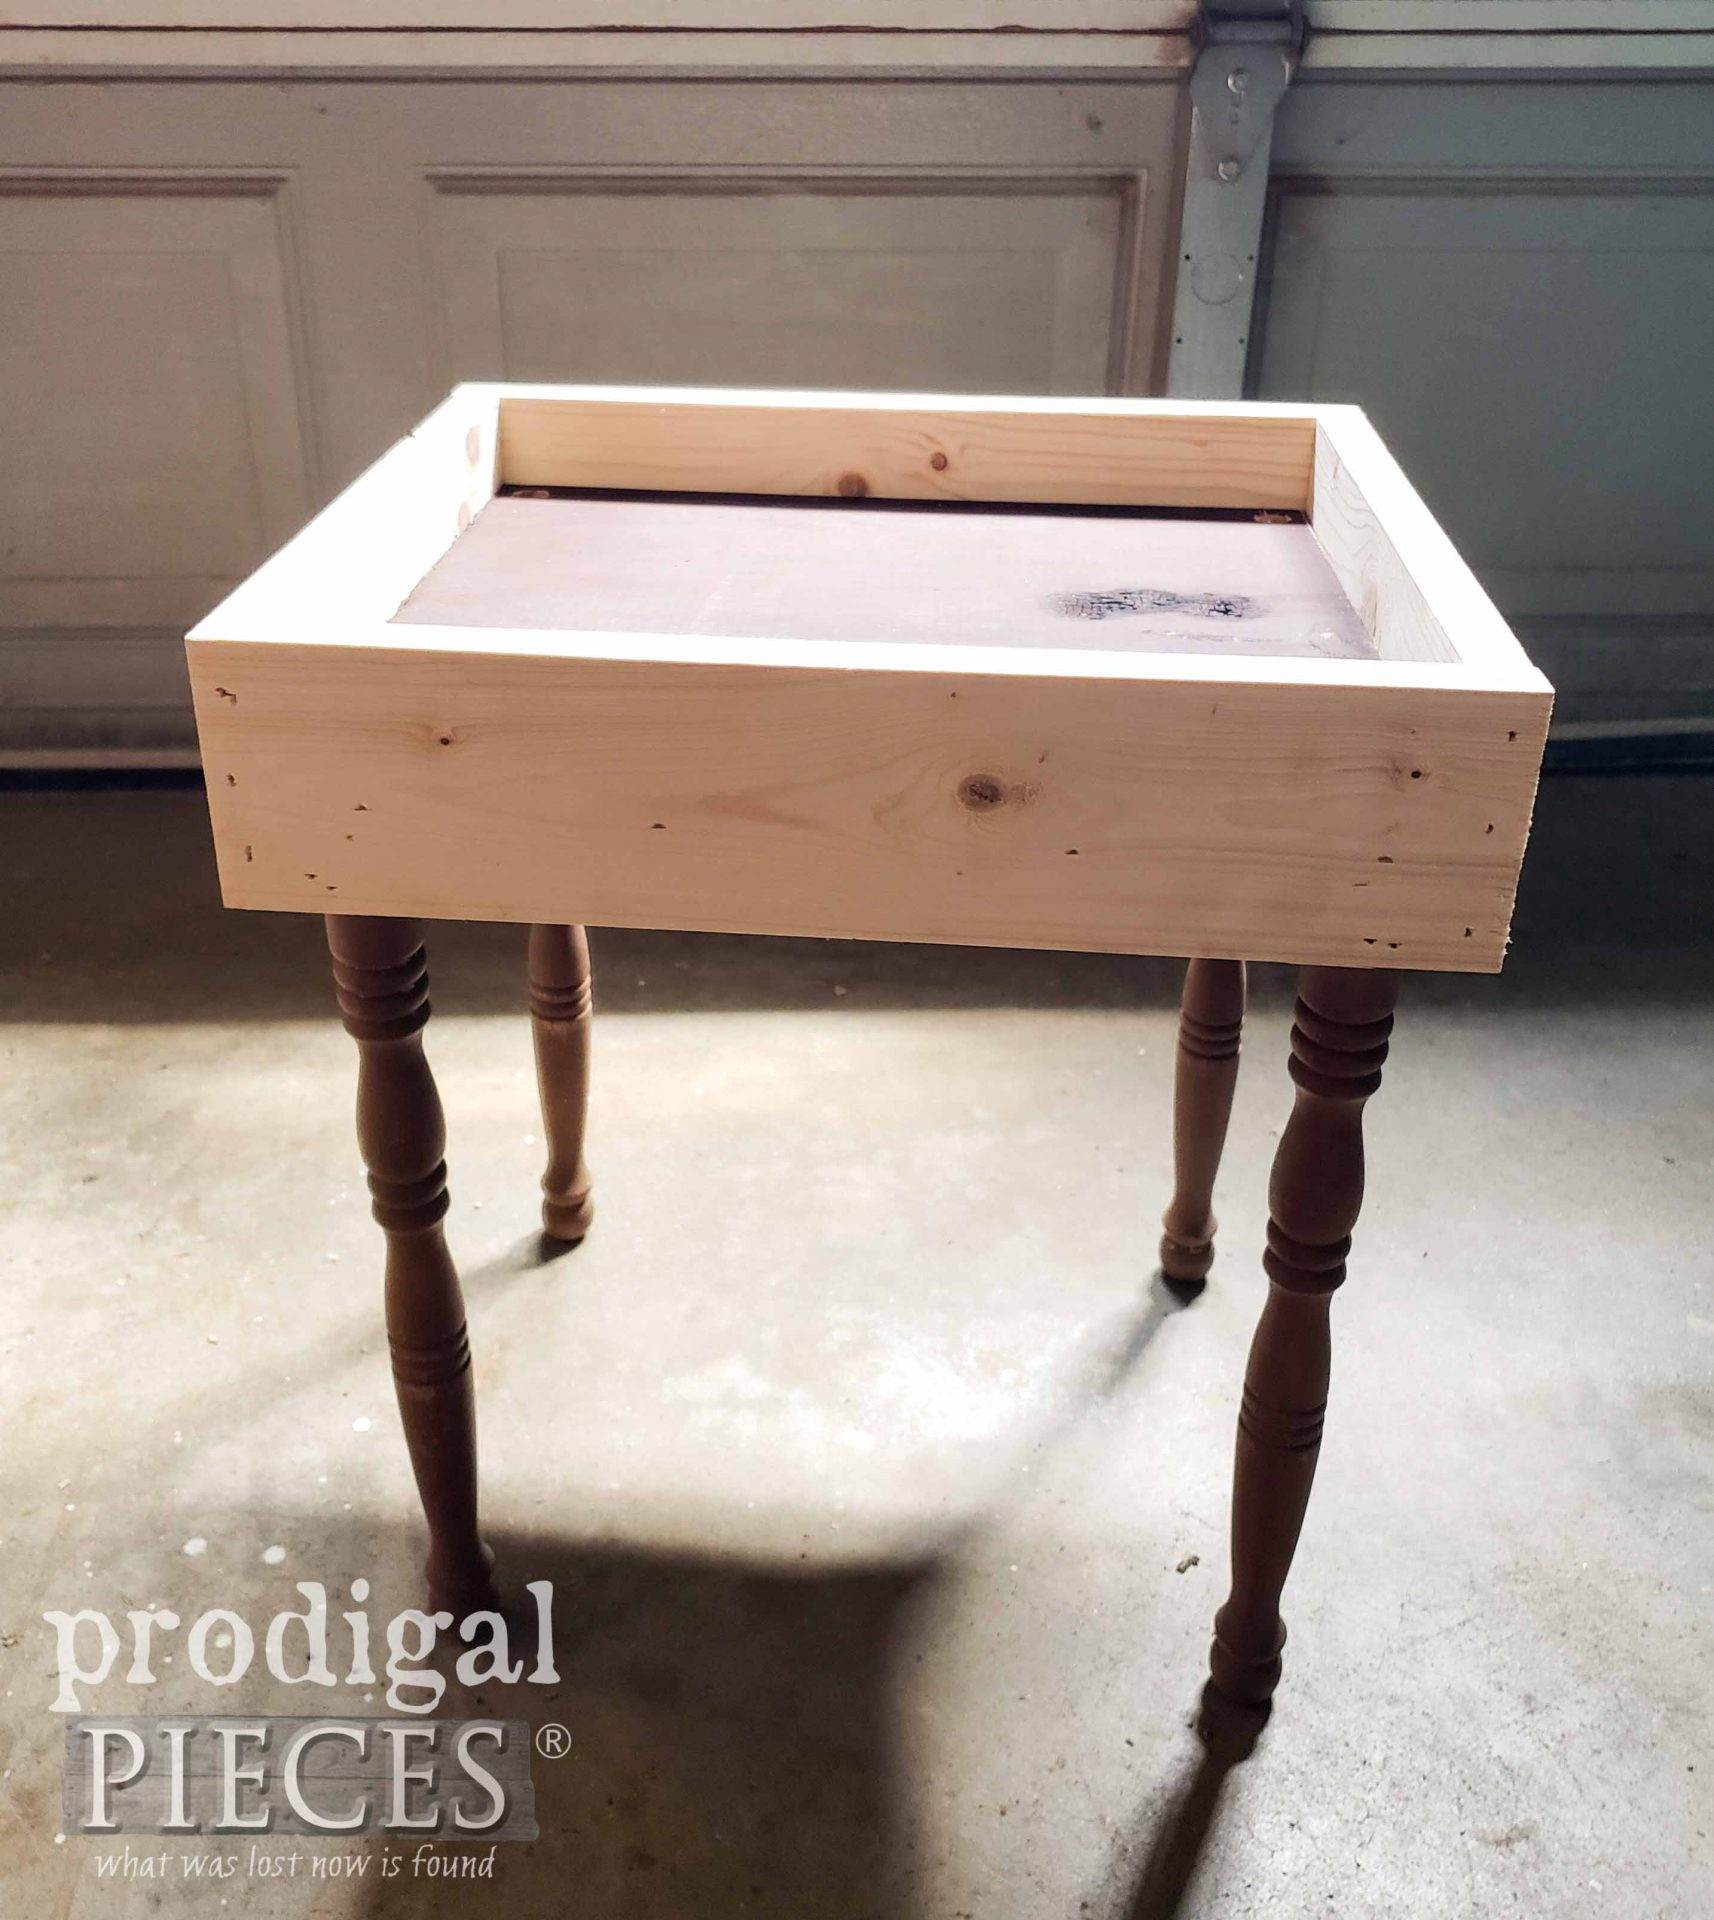 Upcycled Basket Table in the Rough | prodigalpieces.com #prodigalpieces